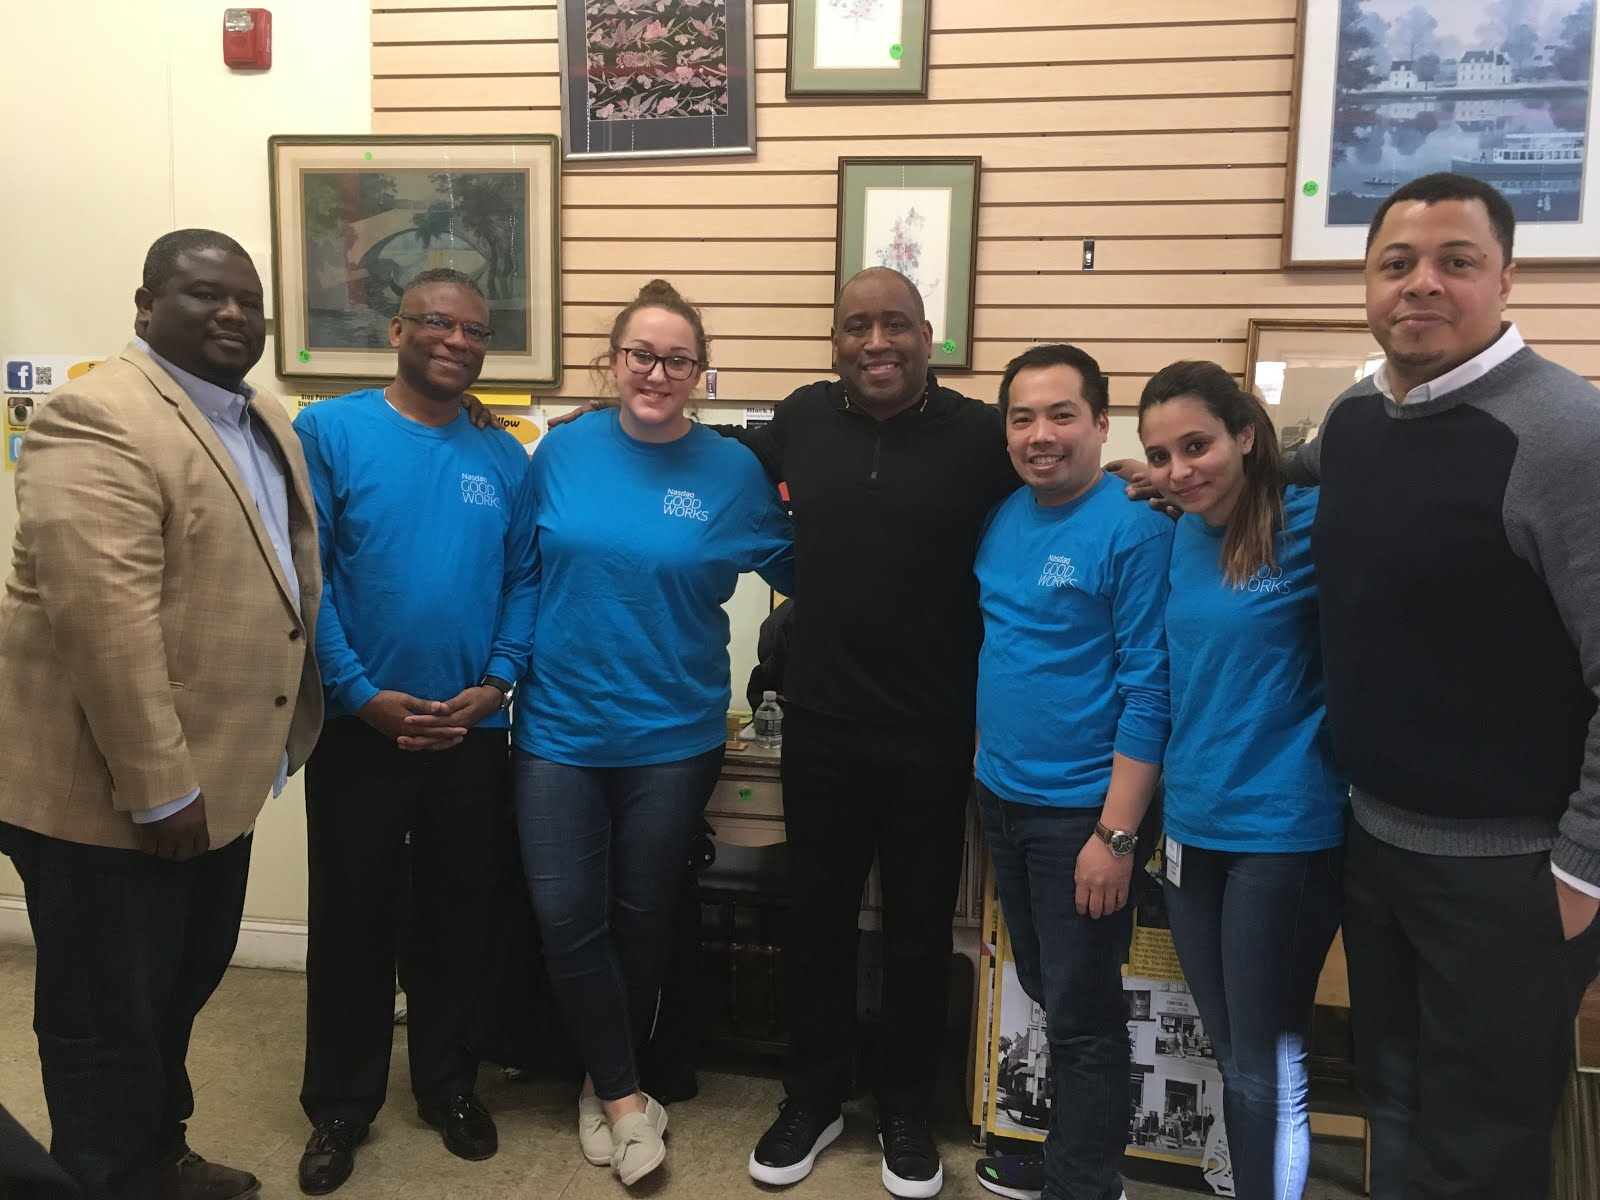 Thank you to the team from NASDAQ who volunteered at Uhuru for African History Month